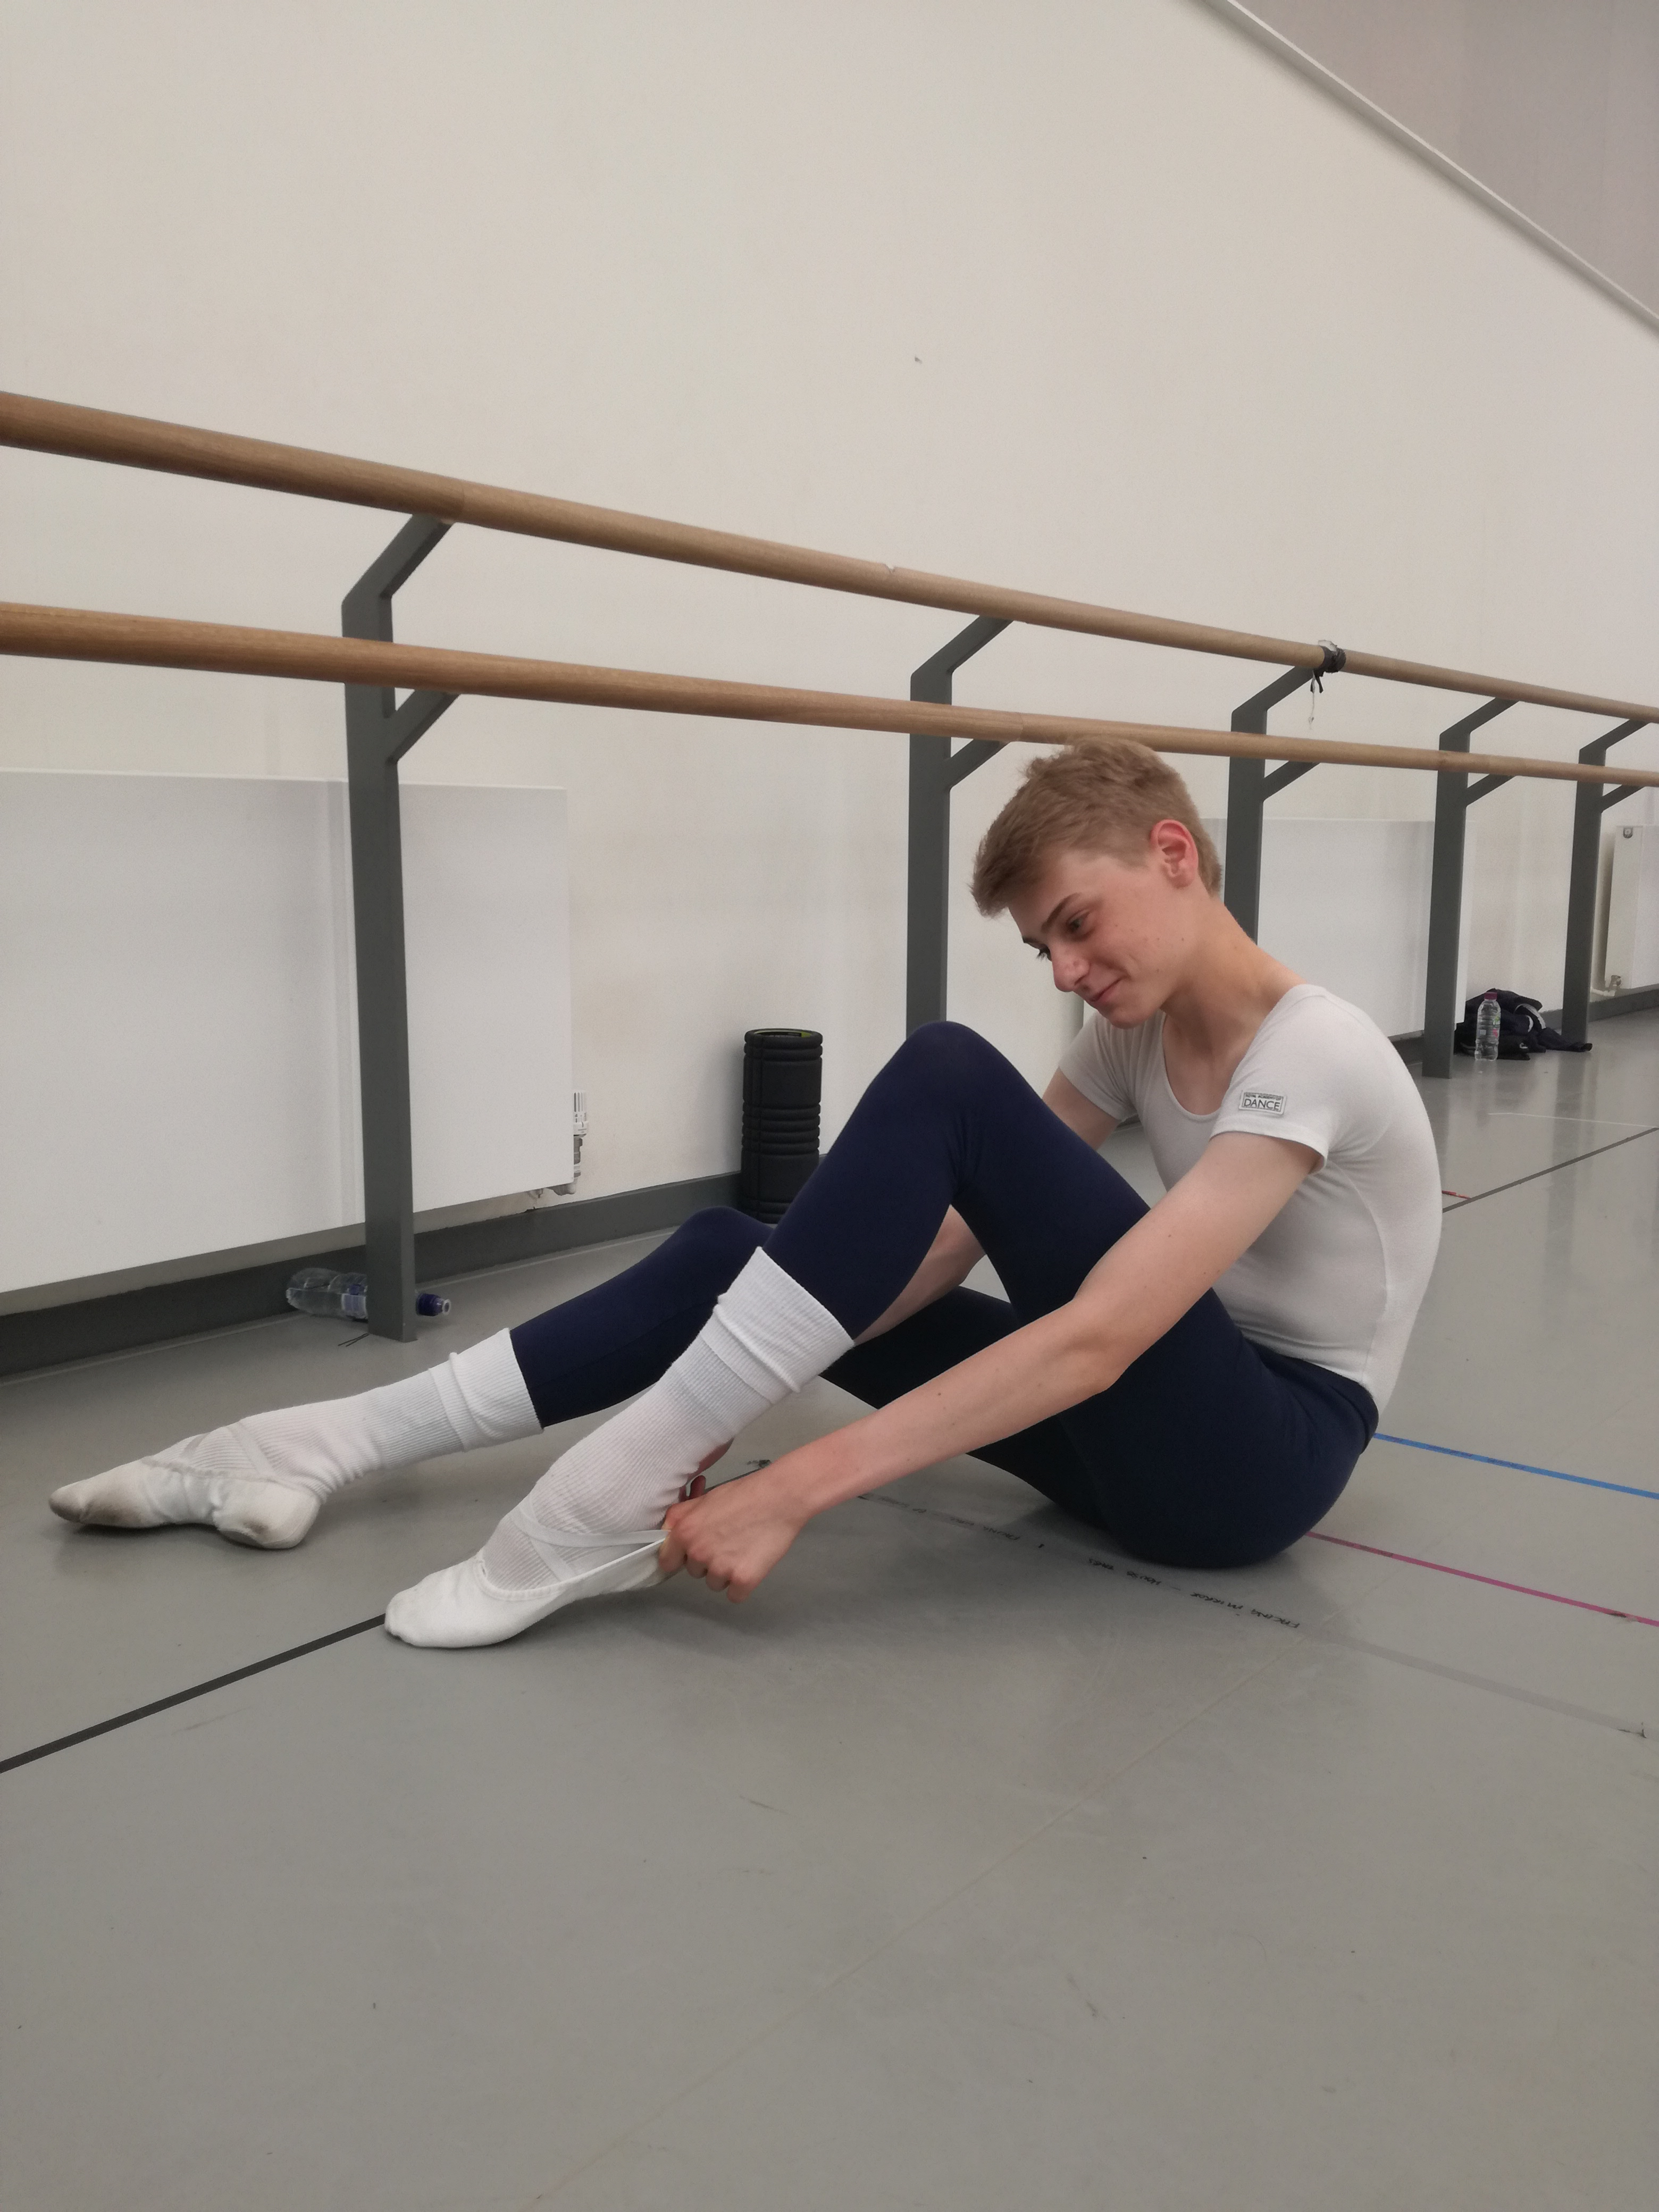 Seamus getting ready for a class in the ballet studios